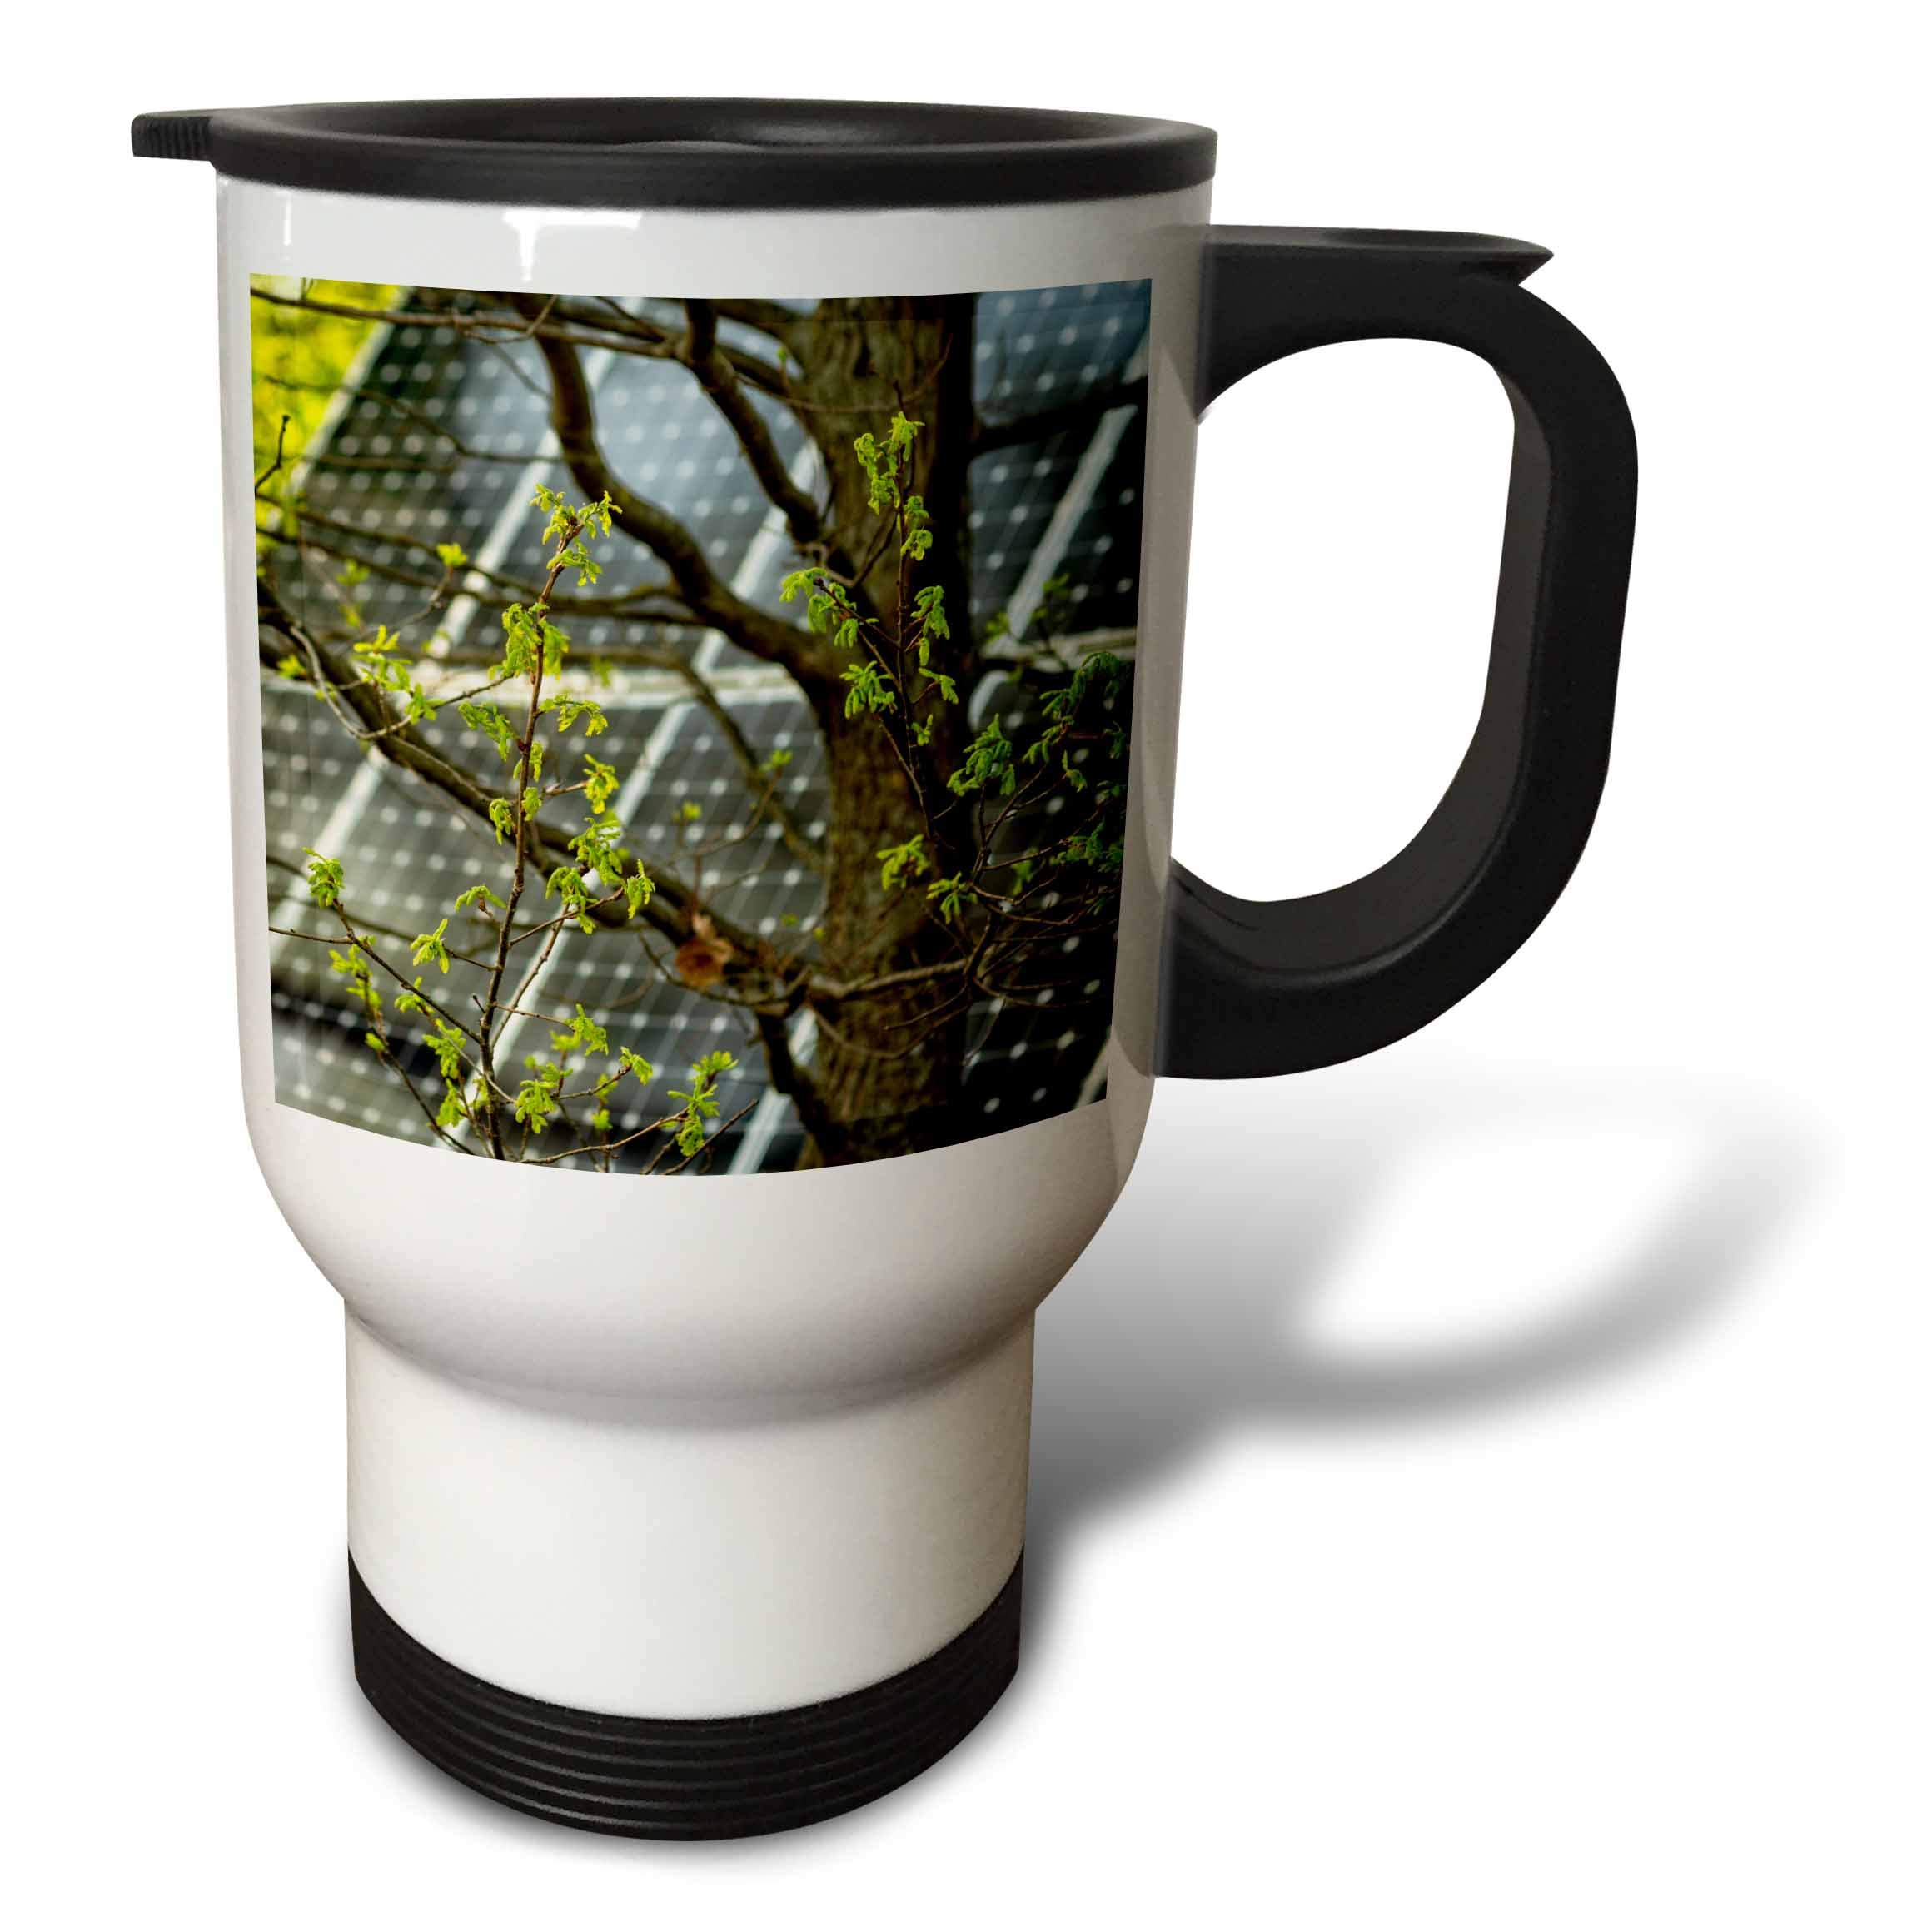 3dRose Alexis Photography - Objects - Oak tree with fresh leaves, solar power panel in the background - 14oz Stainless Steel Travel Mug (tm_290827_1)